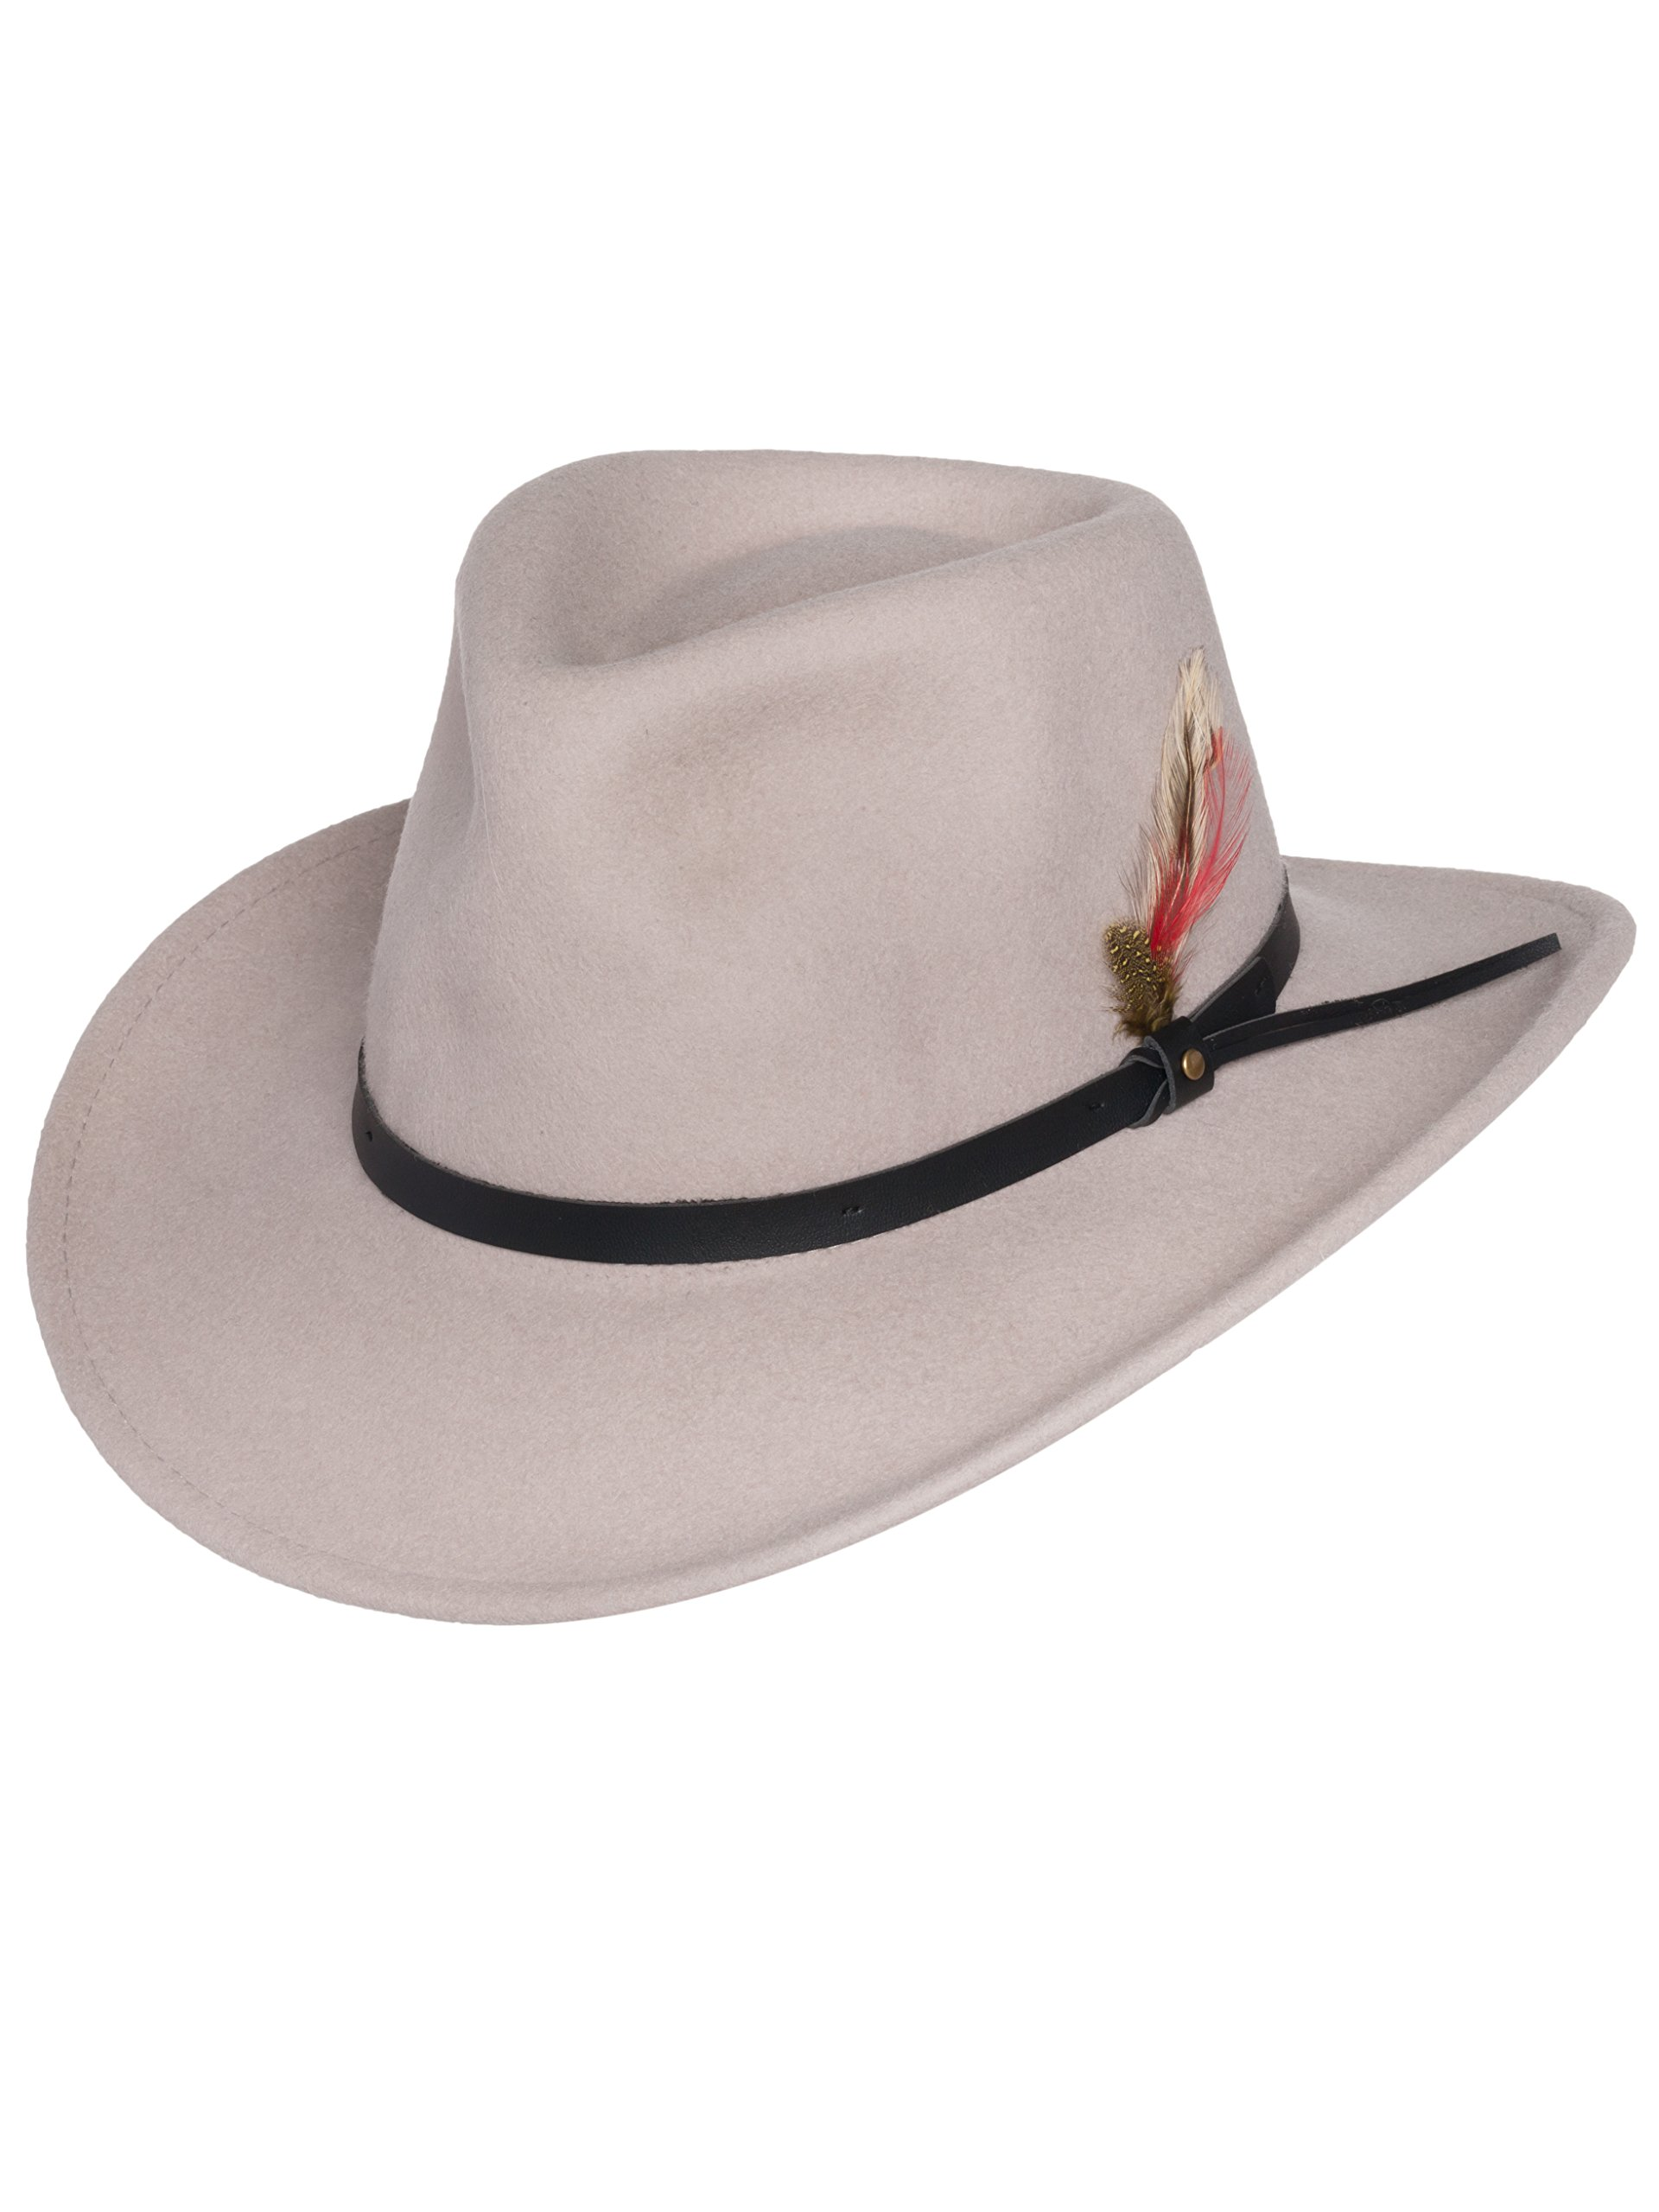 Men's Outback Wool Cowboy Hat Montana Putty Silver Belly Crushable Western Felt by Silver Canyon, Silver, Small